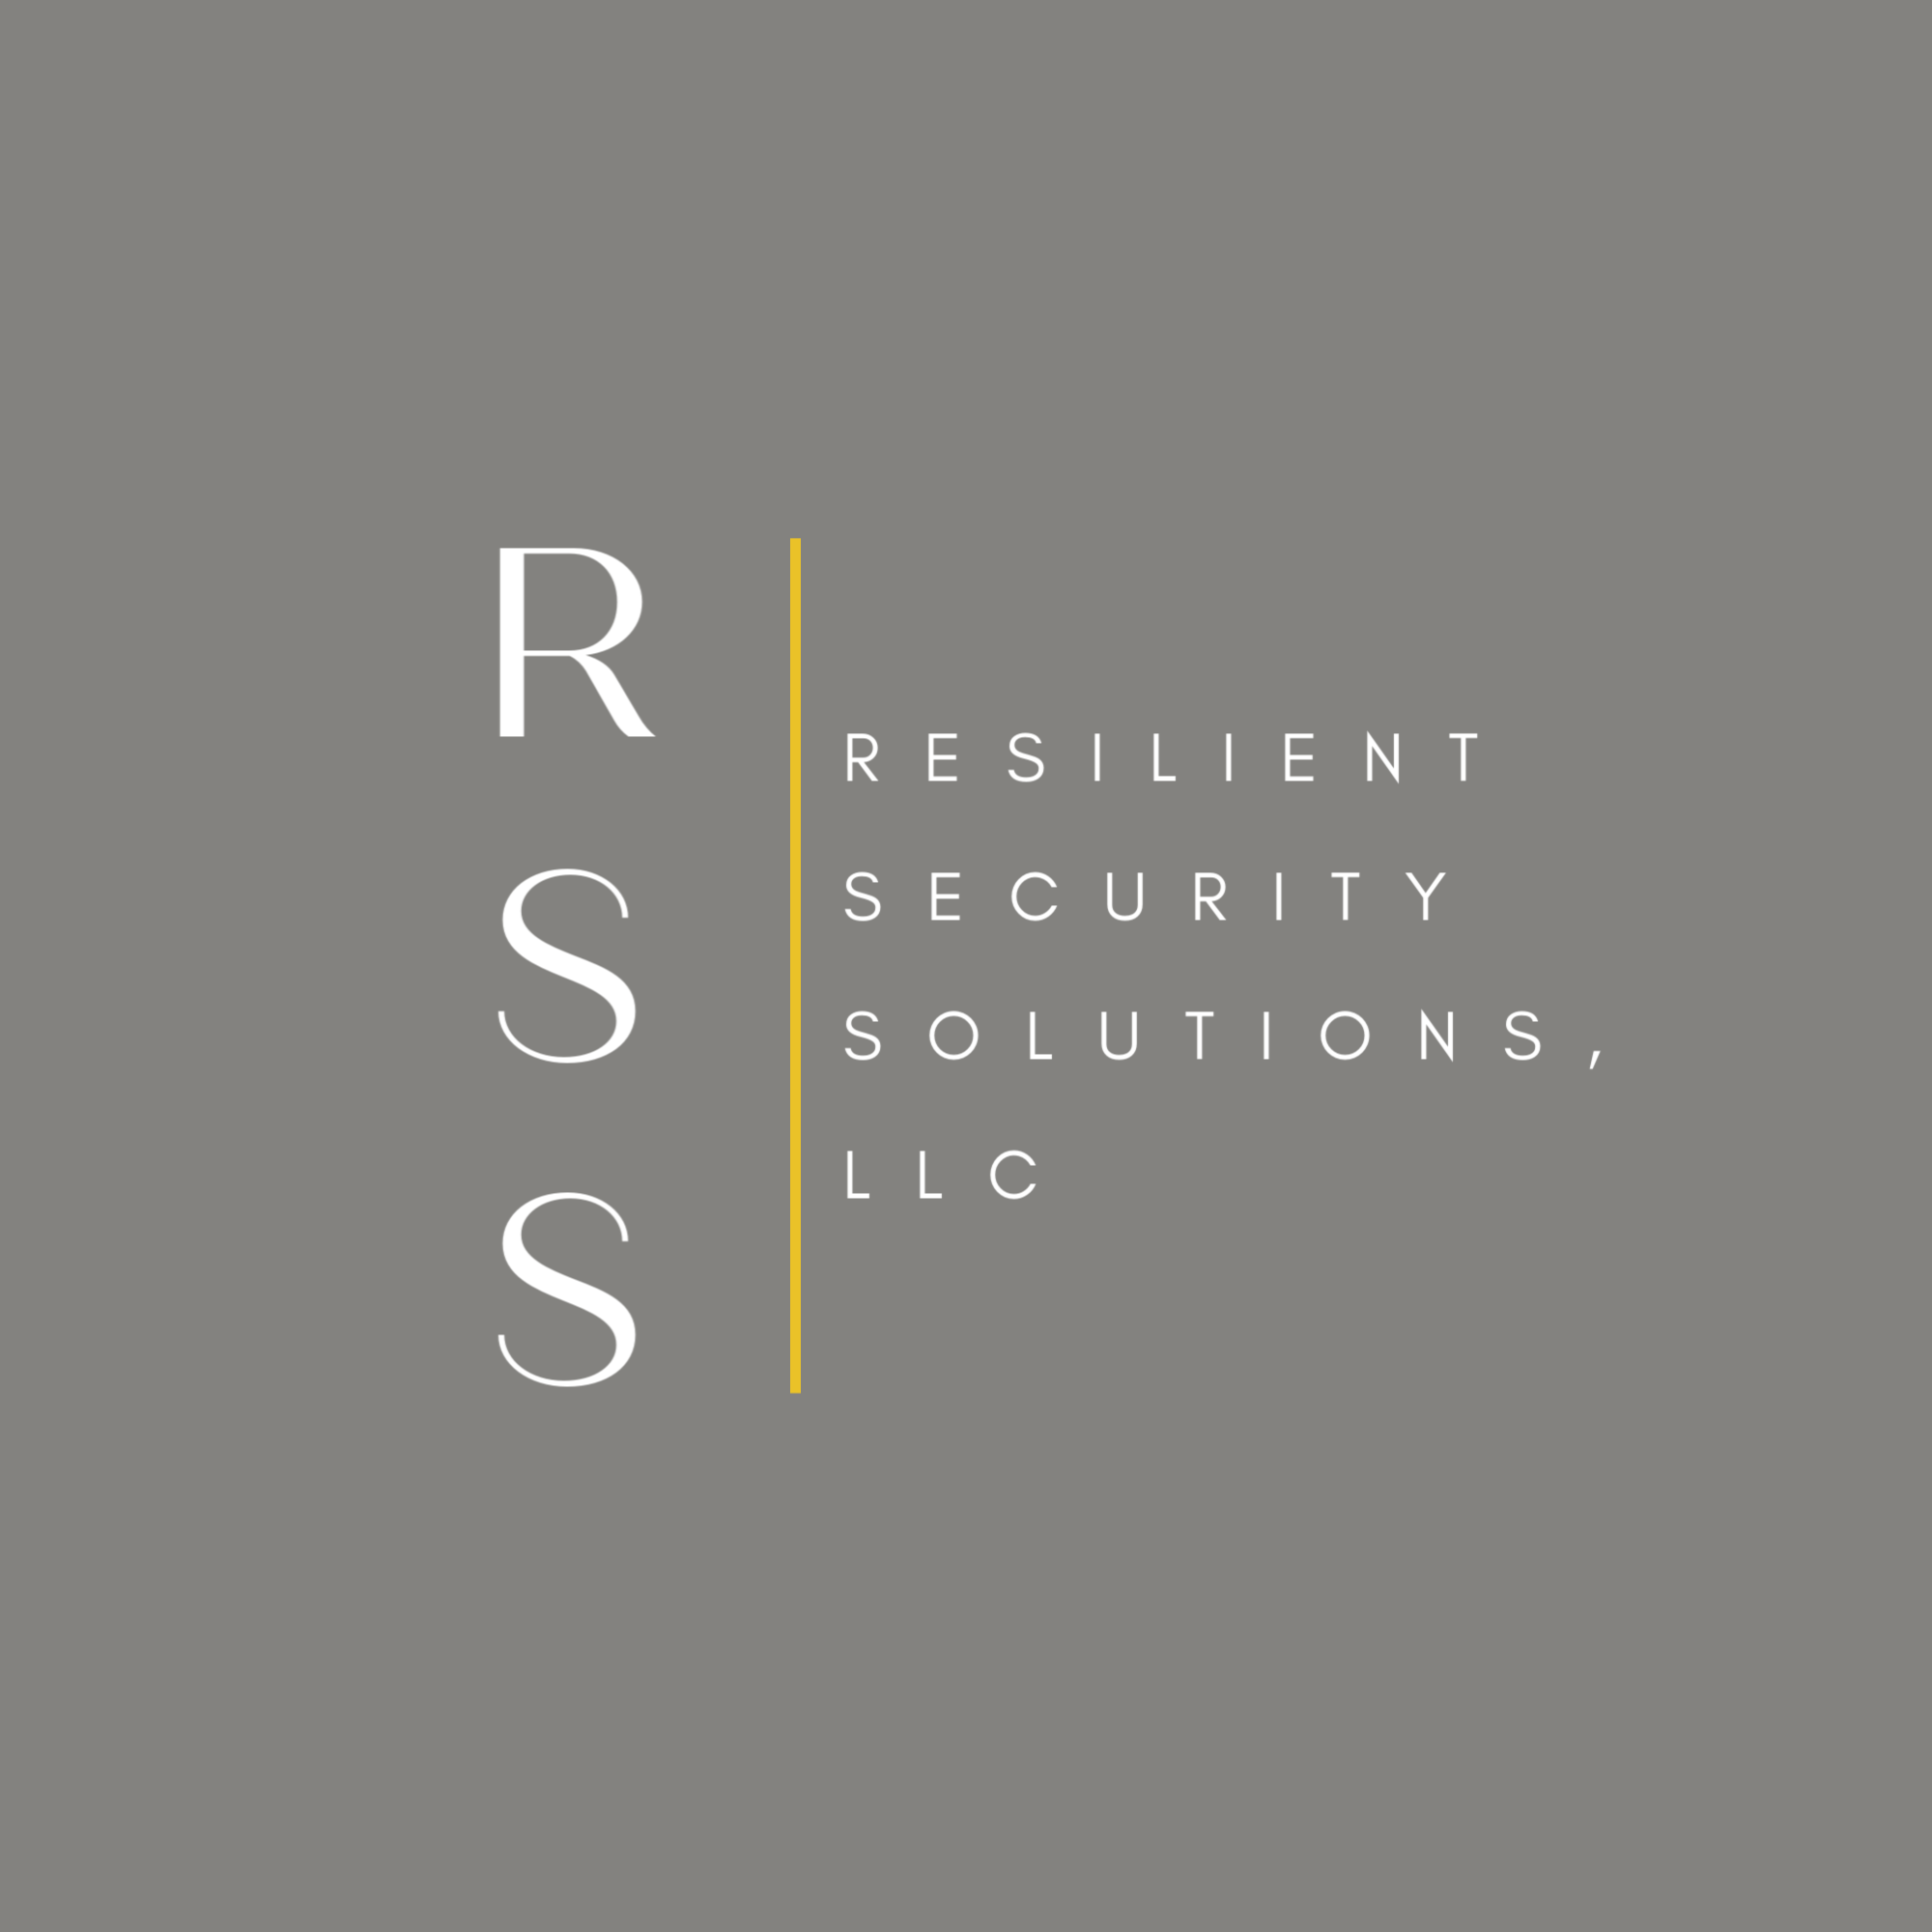 Resilient Security Solutions, LLC